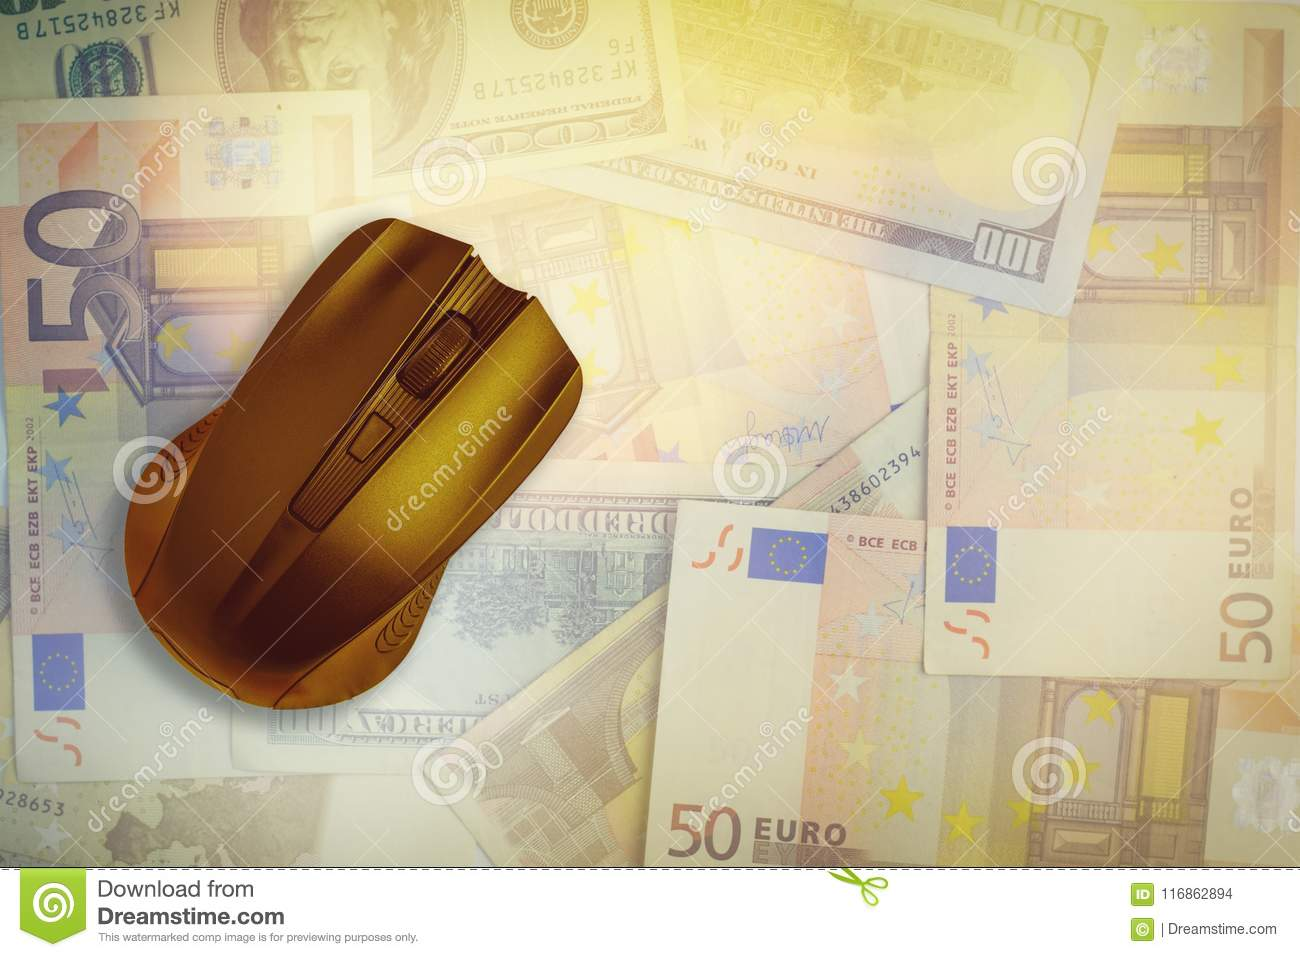 Computer mouse on the background of dollars and euros.